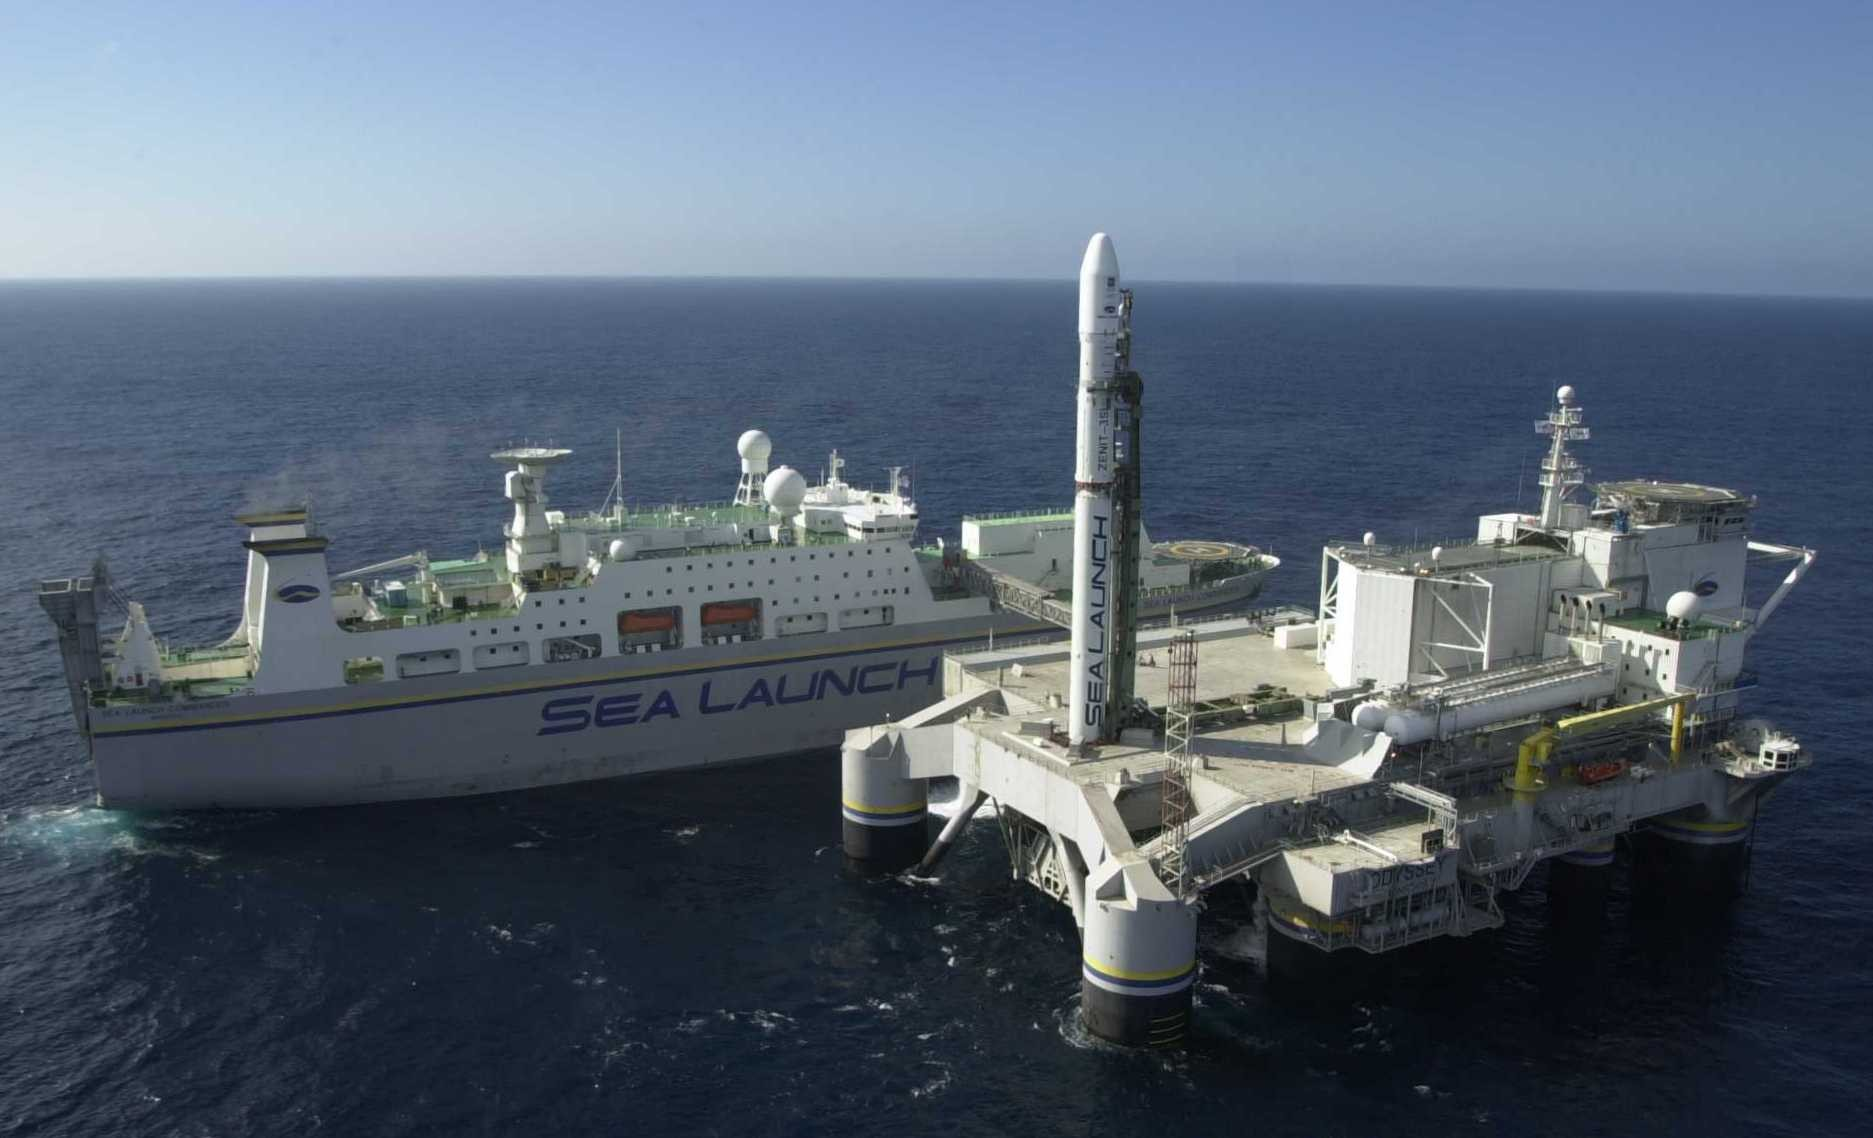 The floating 'Sea Launch' spaceport based in California, U.S.